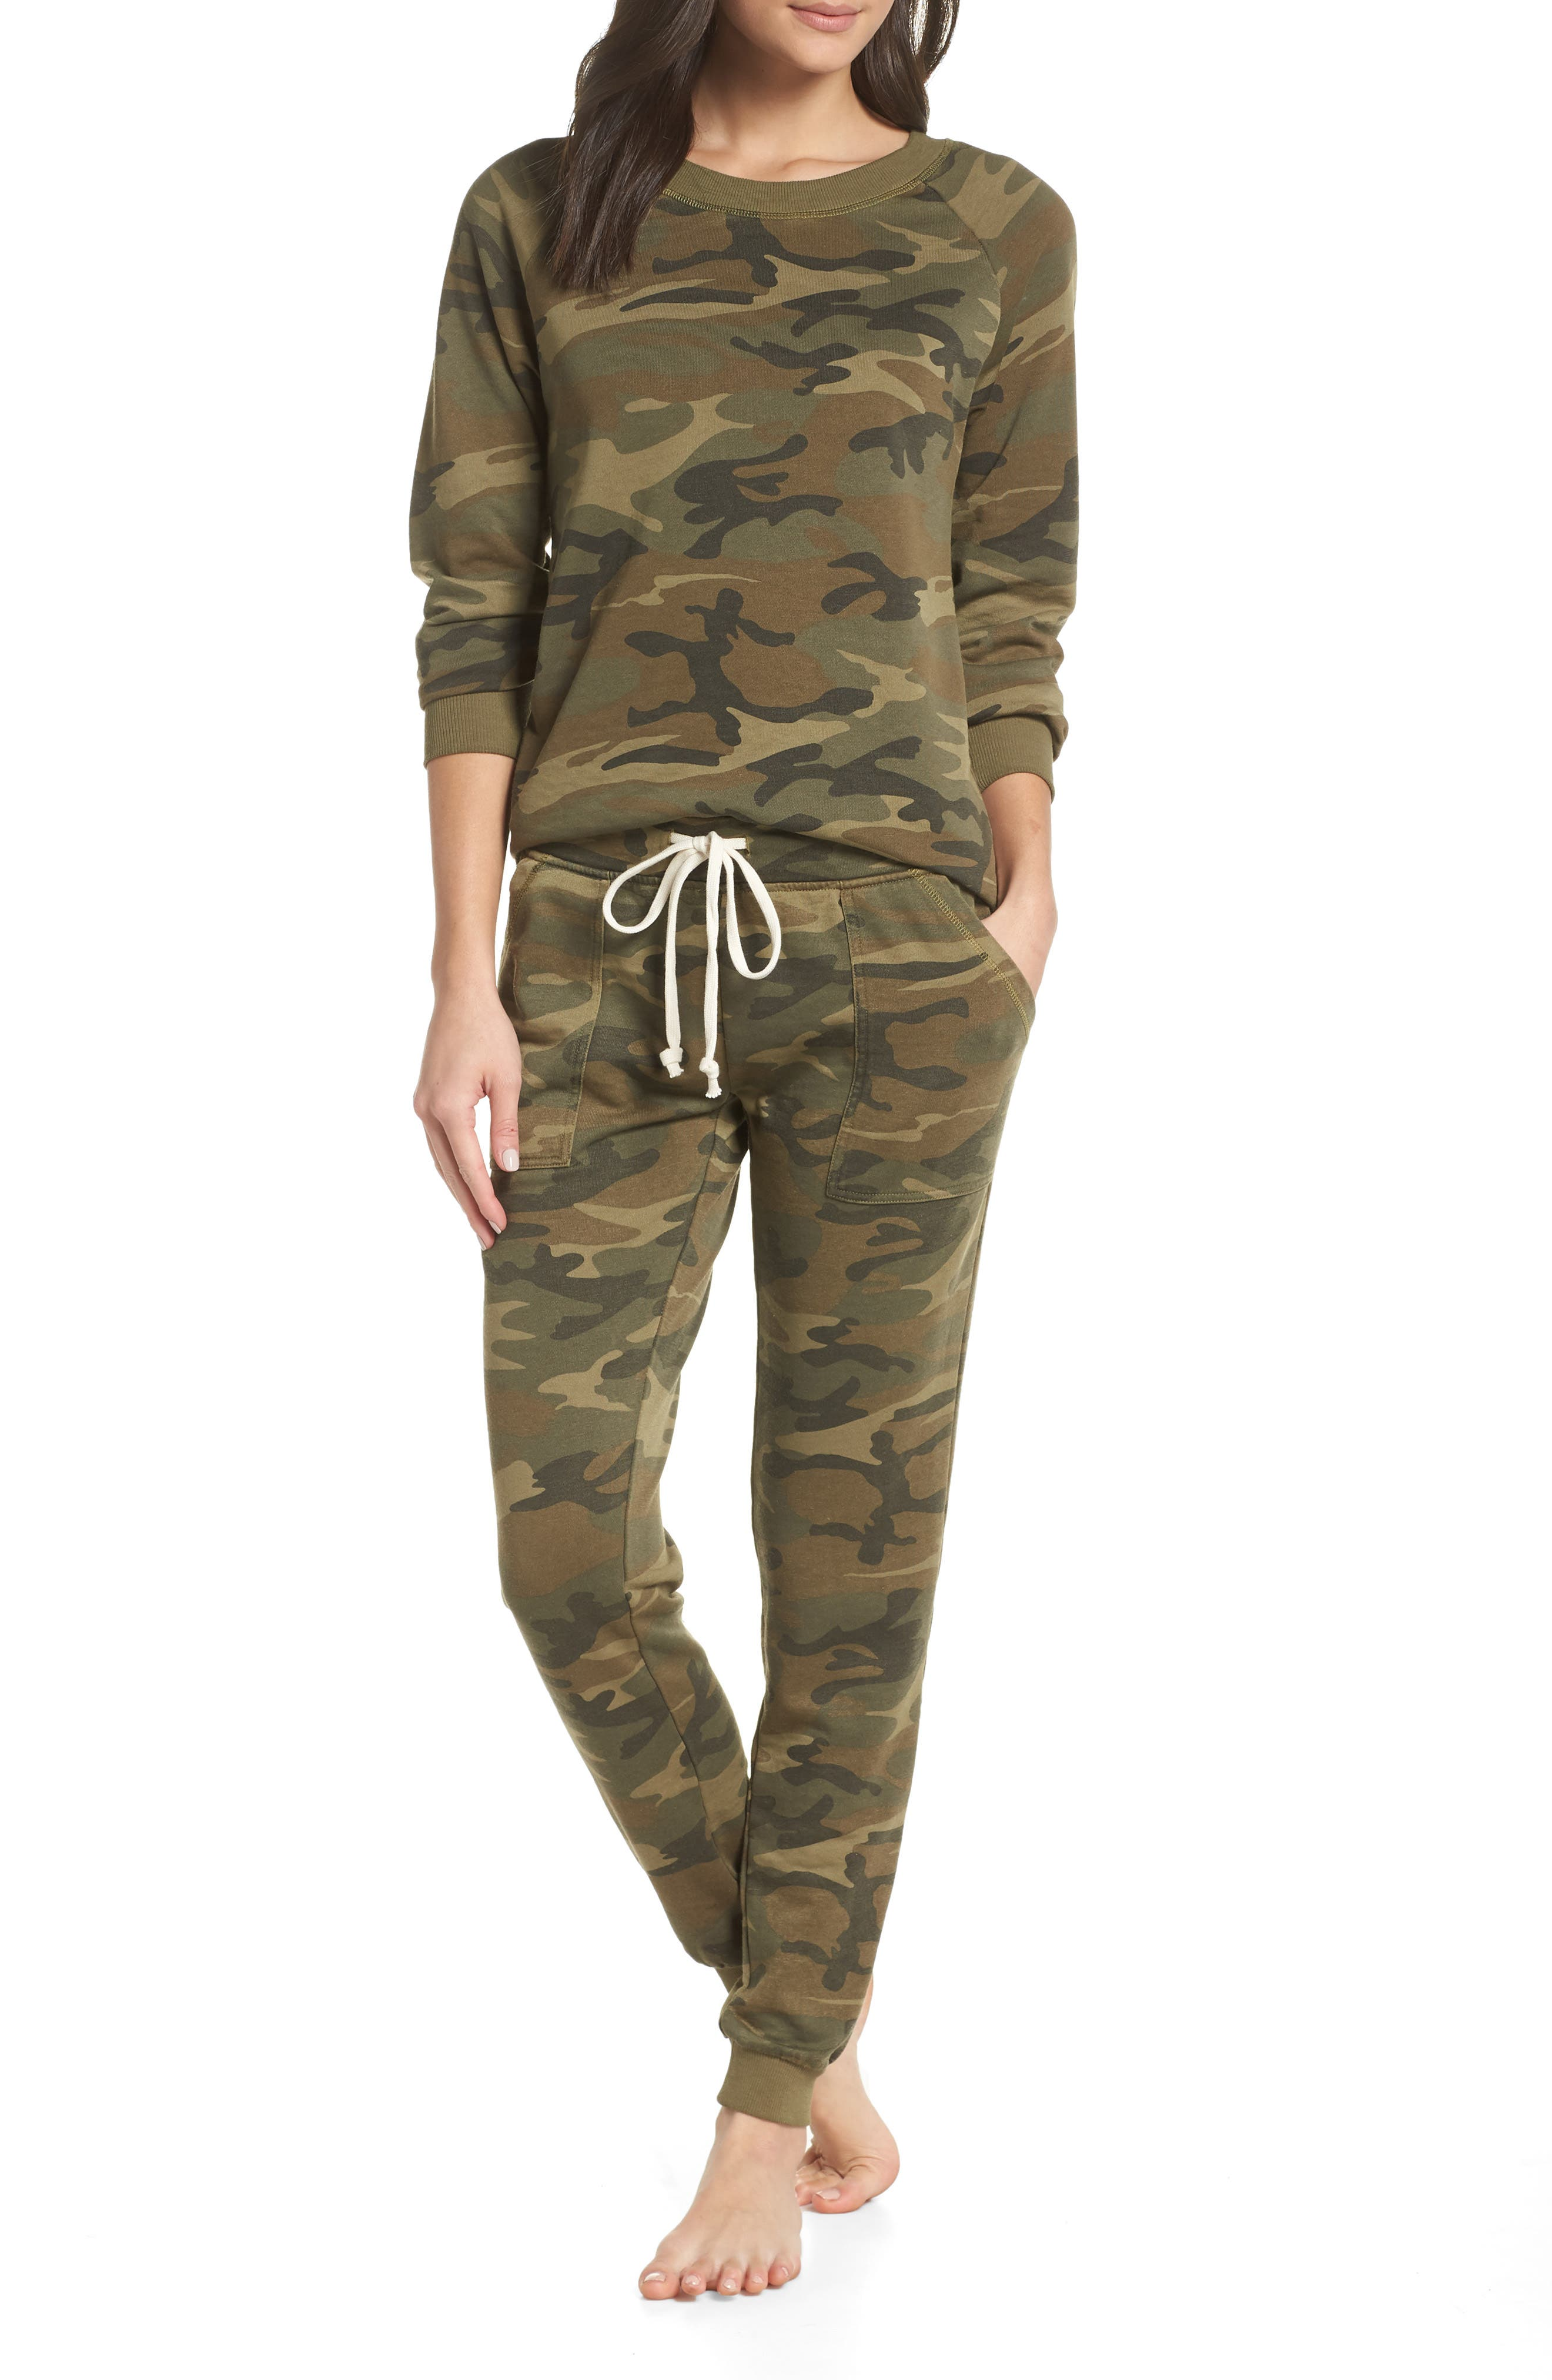 Lazy Day Camo Pajamas in Camouflage Green